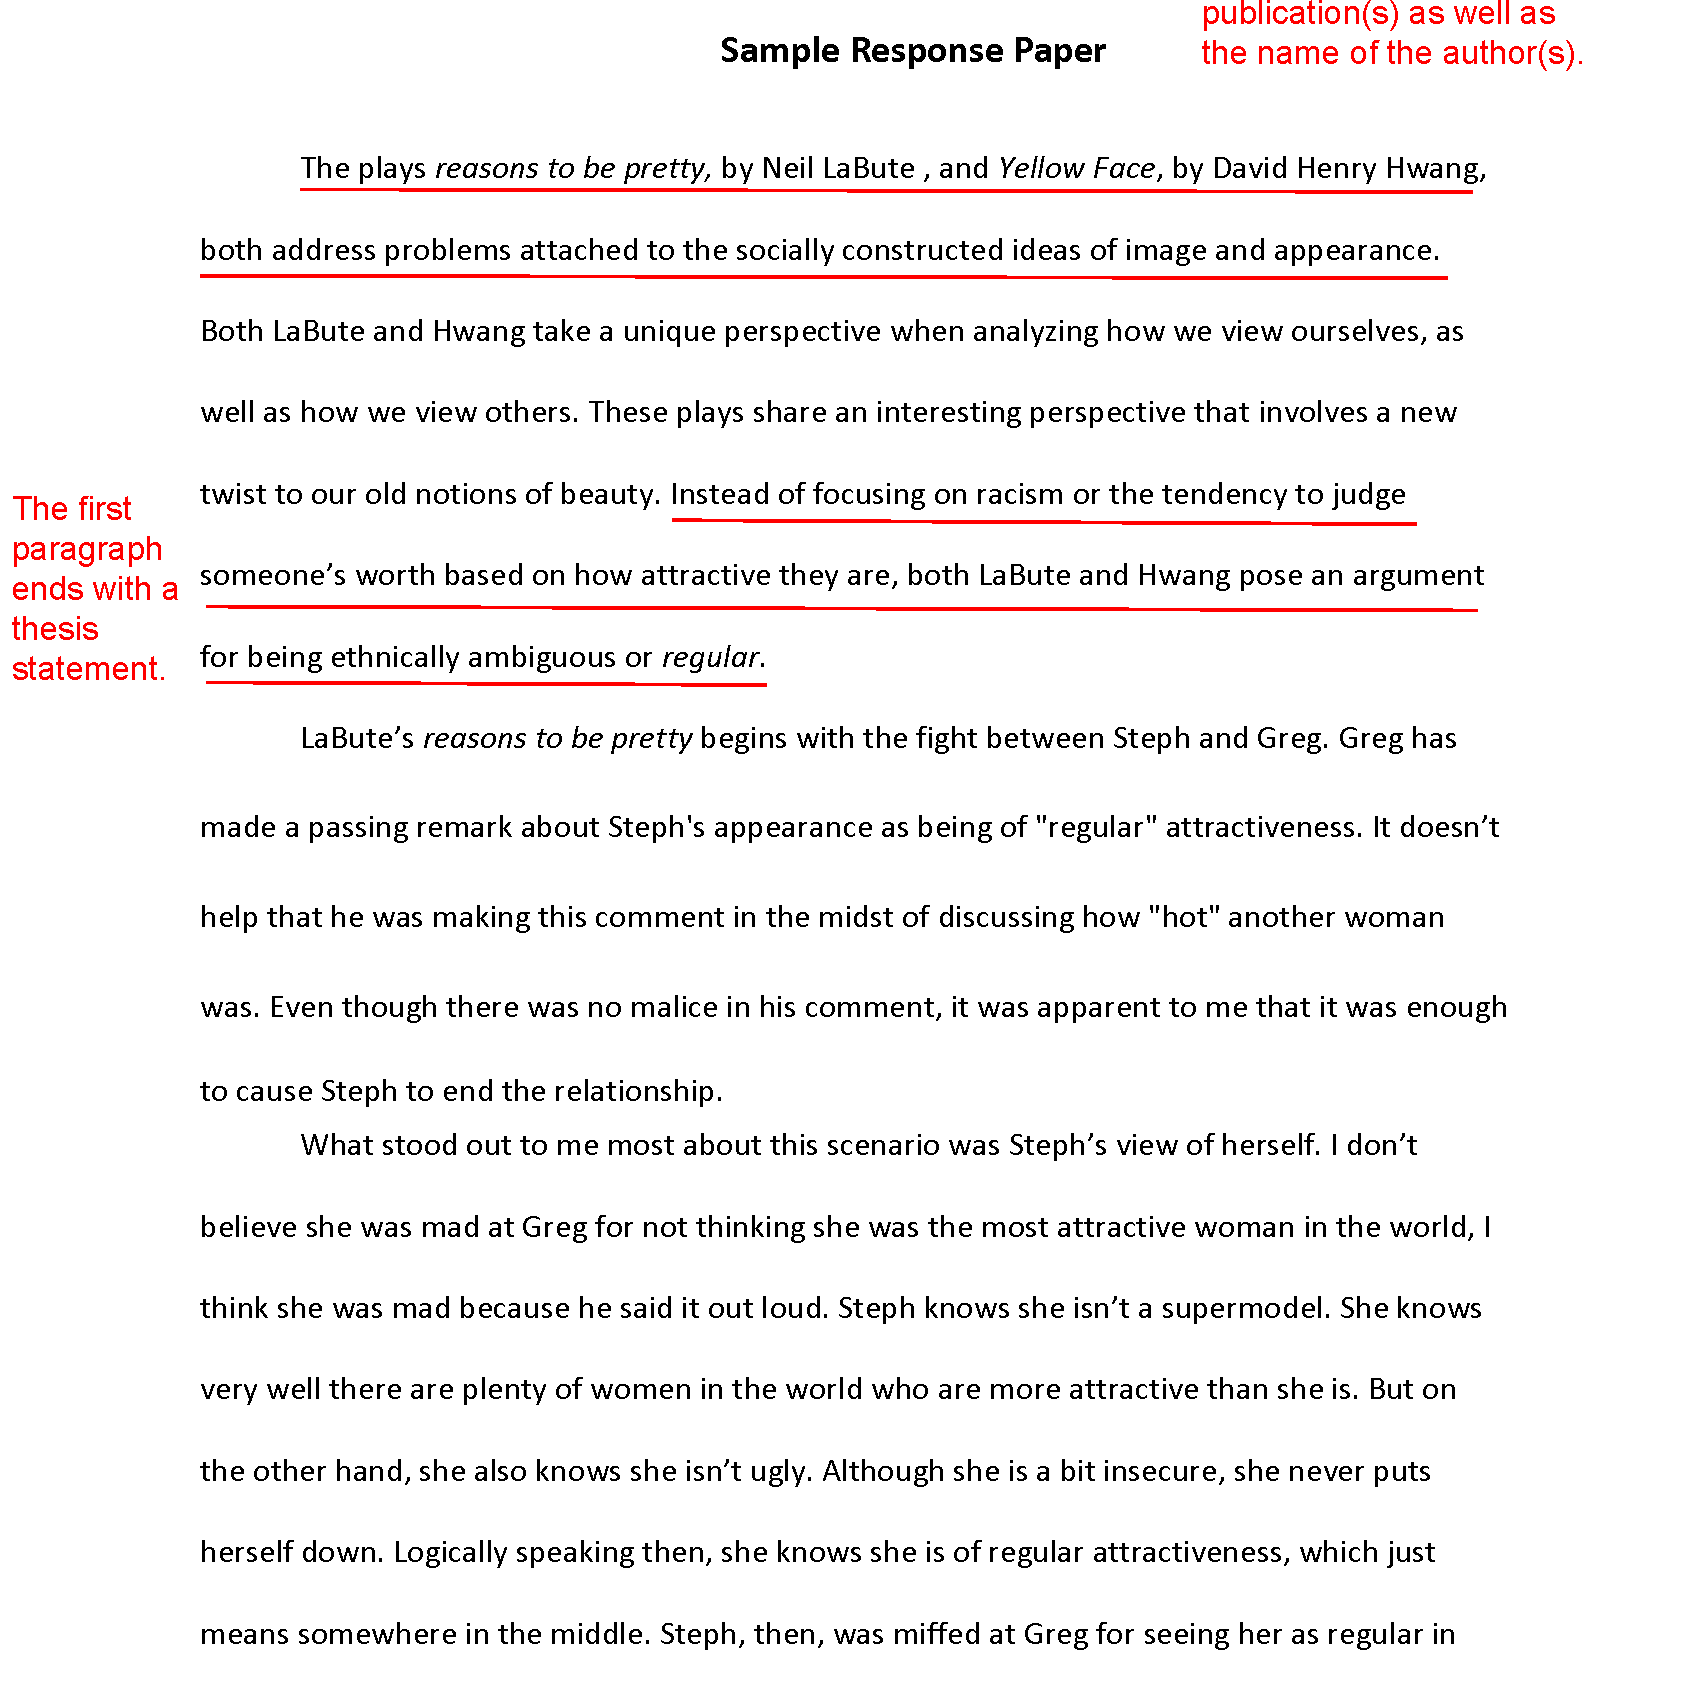 How to Write a Response Paper Formal Sentence Outline Example Apa on apa annotated bibliography examples, jane schaffer outline examples, apa full sentence outline, sentence outline mla format examples, topic outline examples, outline format in excel examples, full sentence outline examples, demonstration speech outline examples,